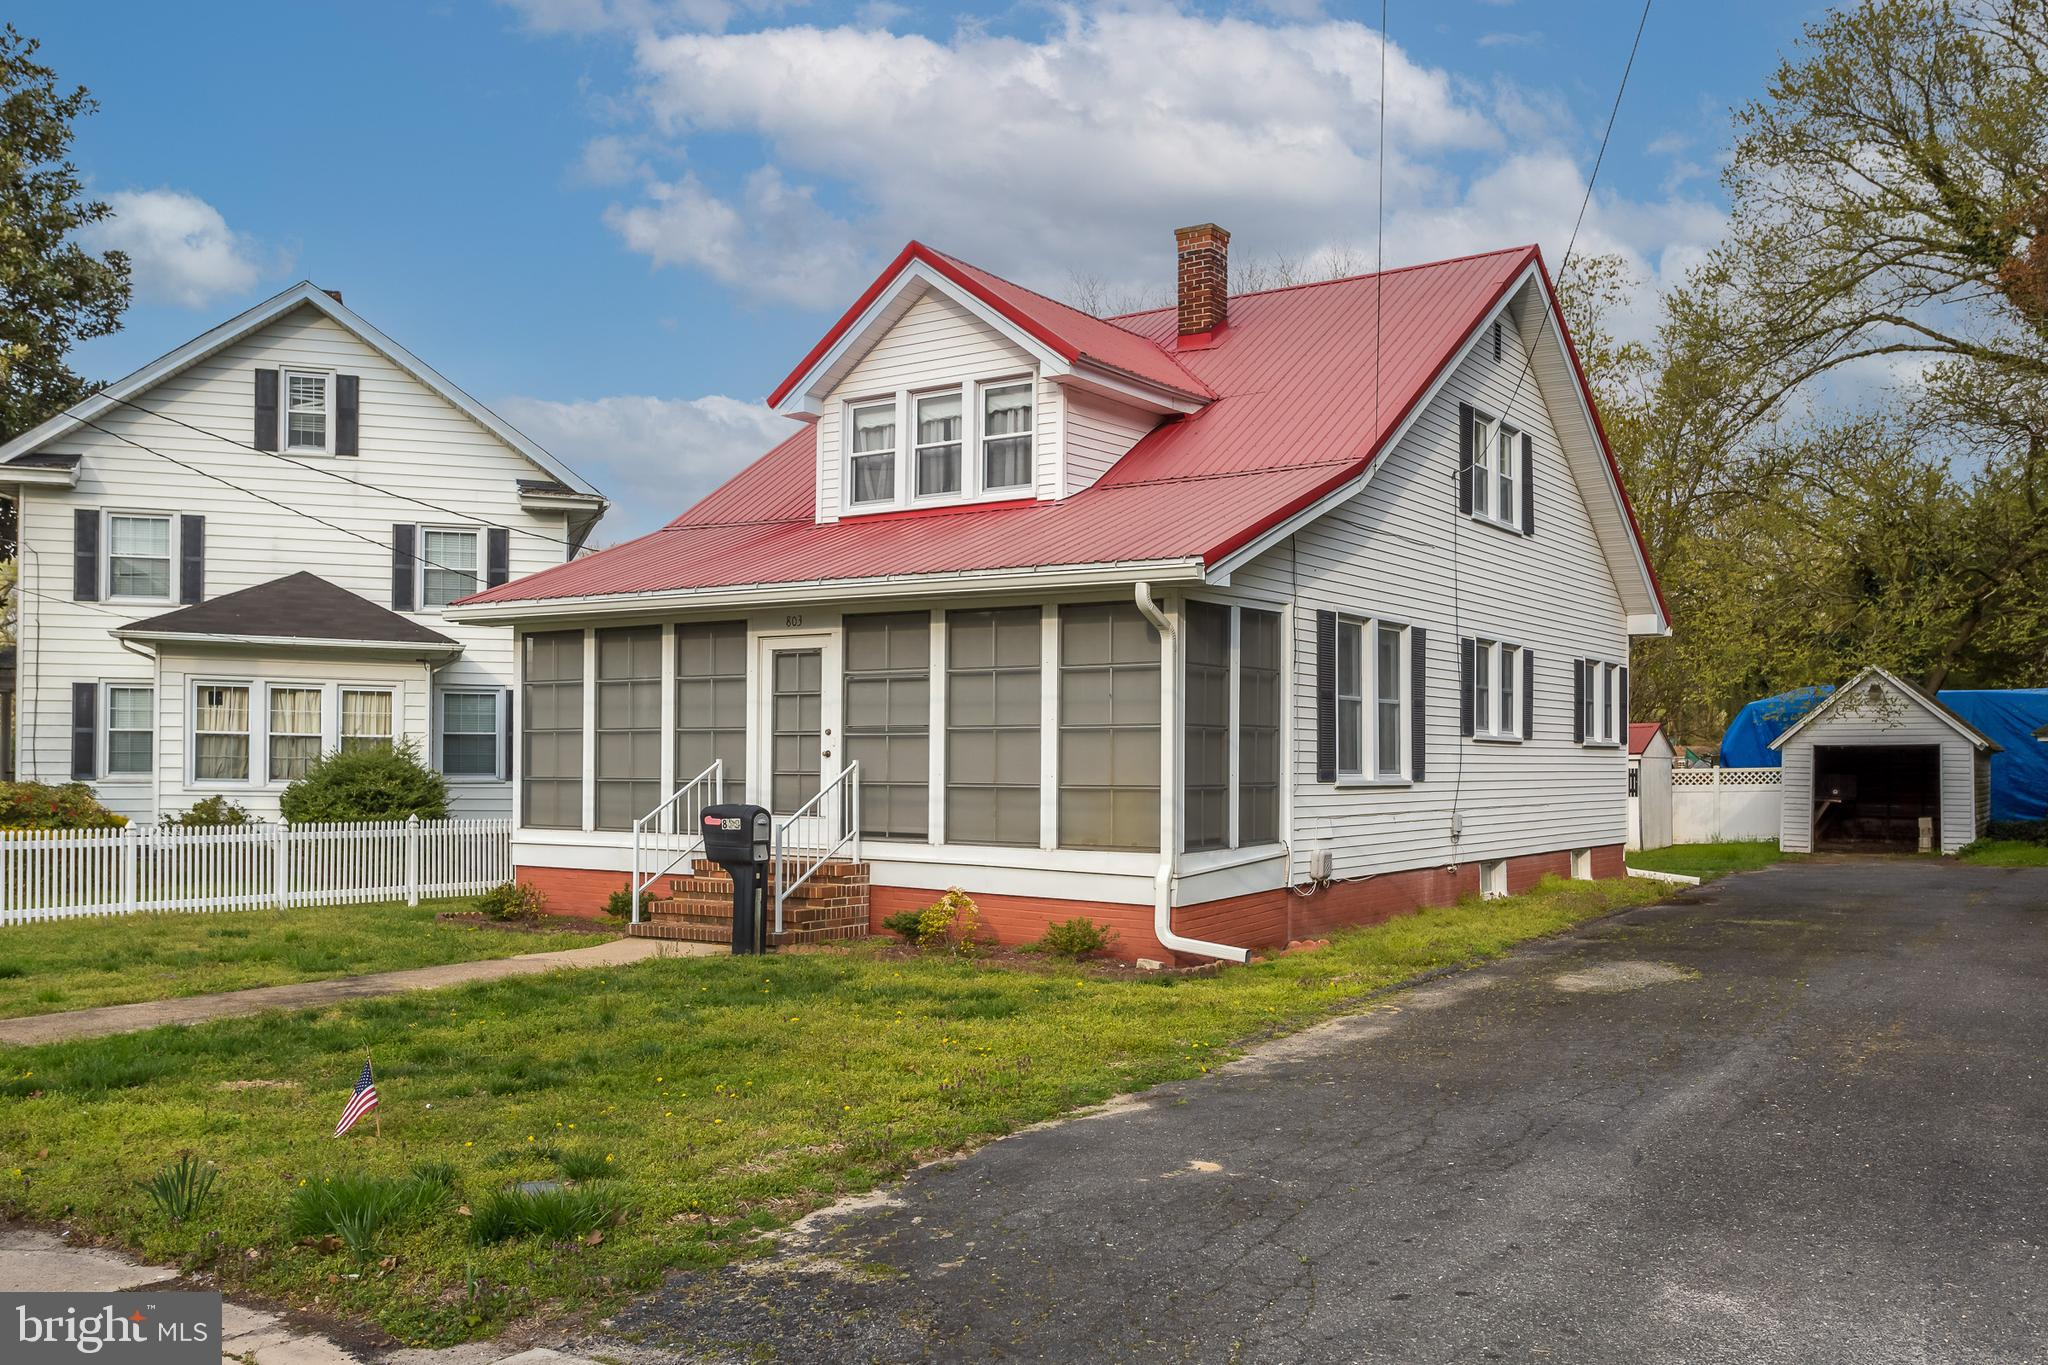 Well maintained home with charm and character in town of Laurel. Lower level consists of living area